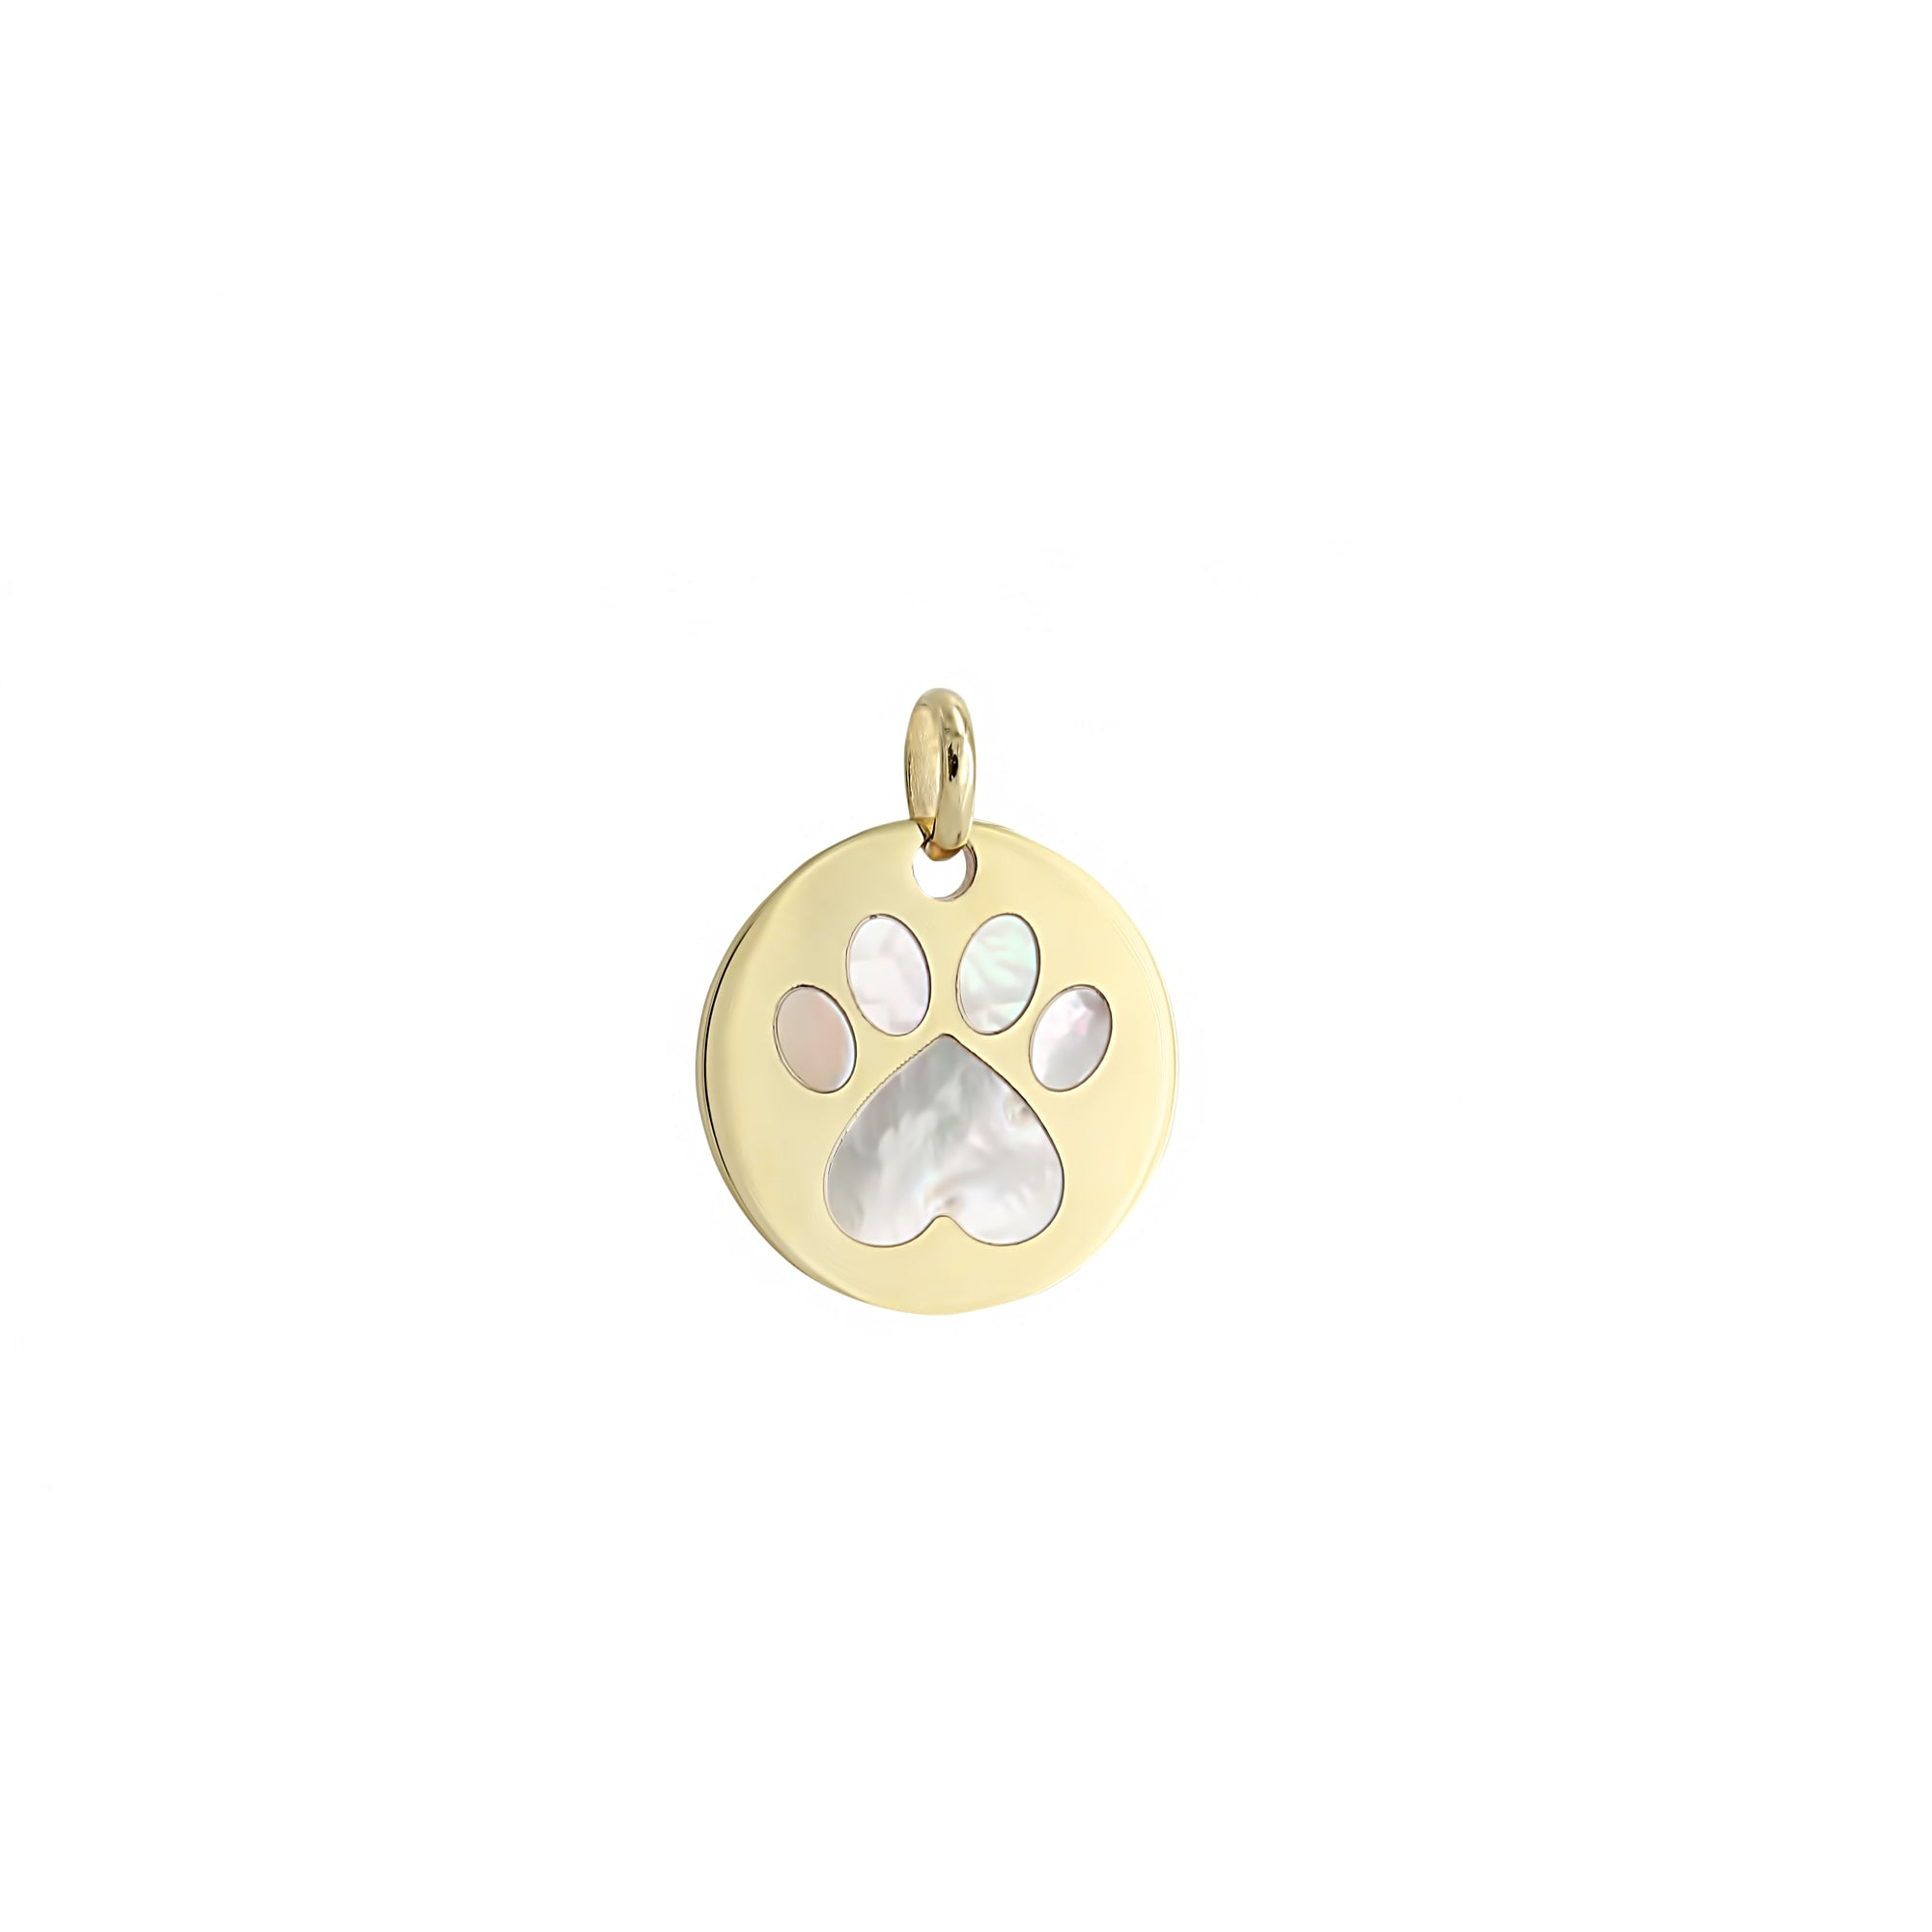 Our Cause for Paws 14k Yellow Gold Round Disc Mother of Pearl Inlay Paw Charm